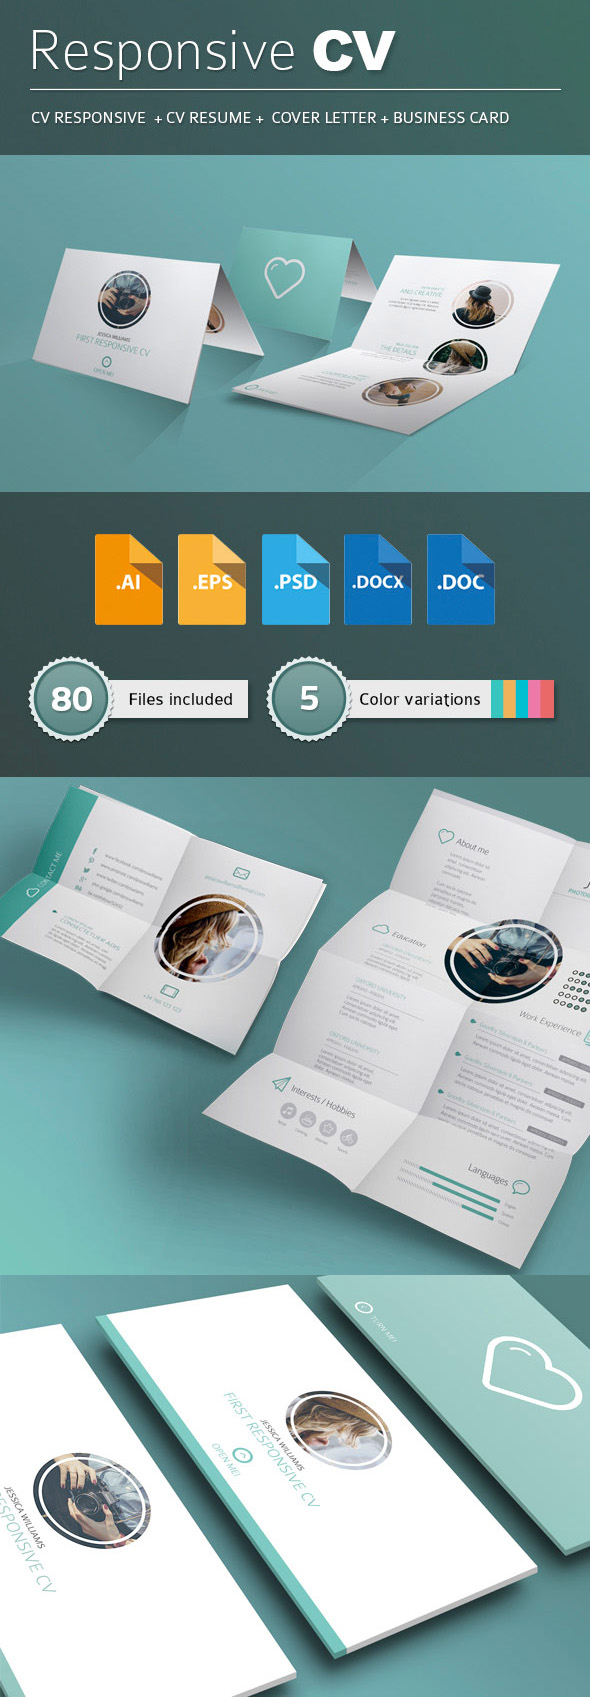 Responsive & Printable Resume/CV Pack